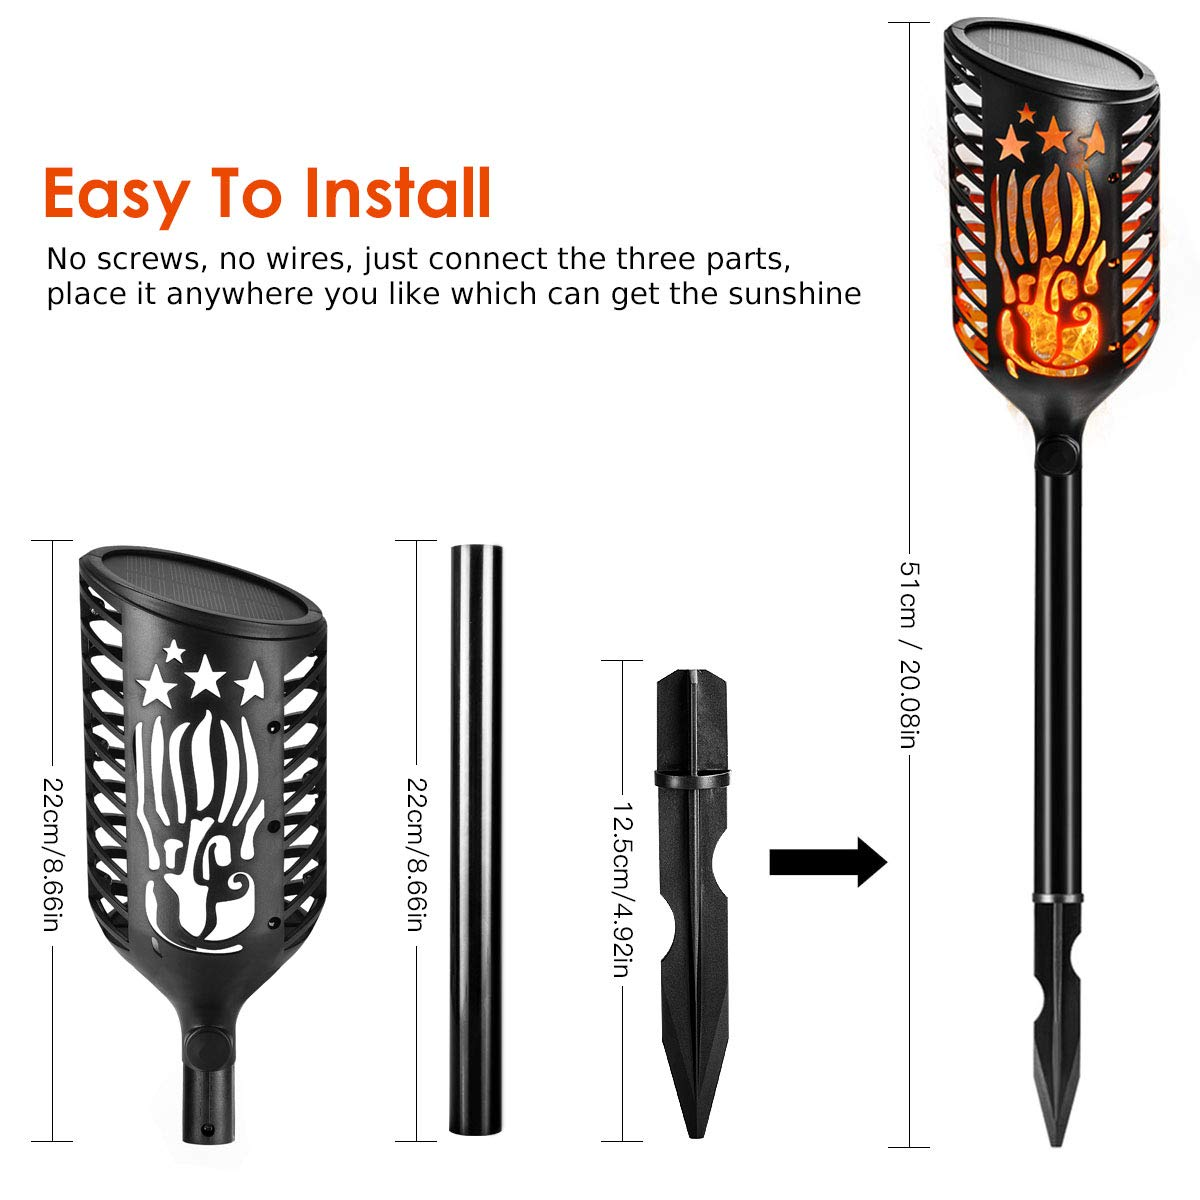 Lantoo Solar Torch Lights 3 Modes for Garden Patio Lawn Yard Pathway 4 Pack Lankdeals Dusk to Dawn Auto On//Off Outdoor Waterproof Dancing Flickering Flames Tiki Torches Landscape Decoration Lighting